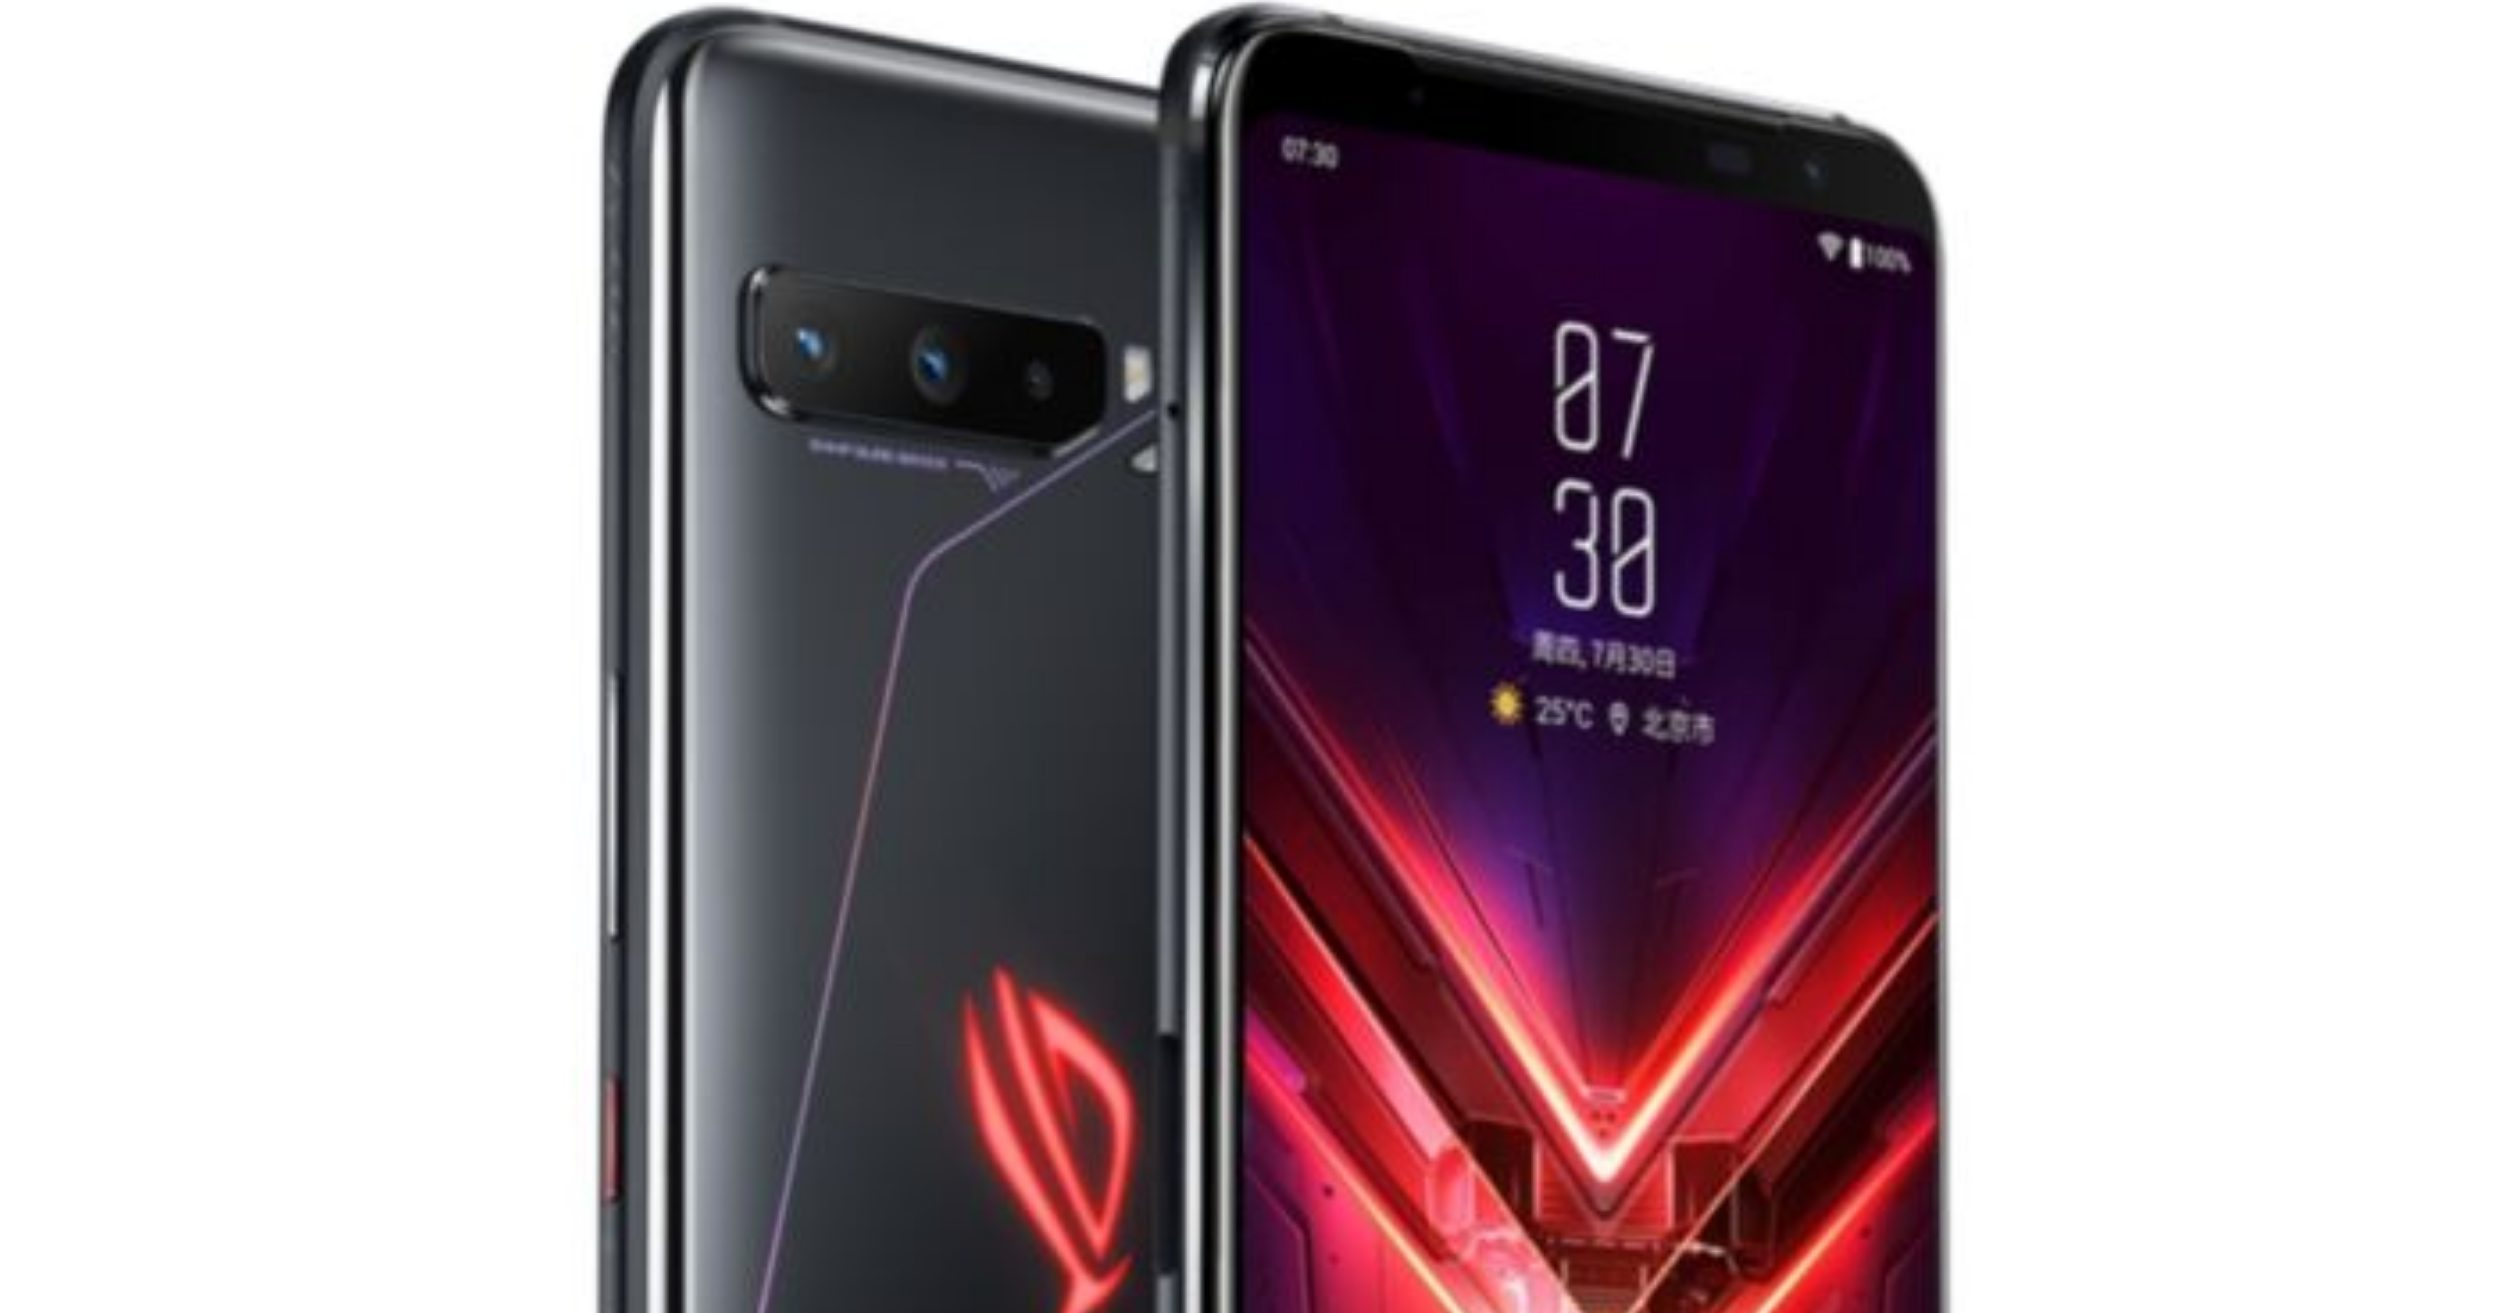 asus-rog-phone-5-specs-suggest-rog-phone-3-is-aging-gracefully